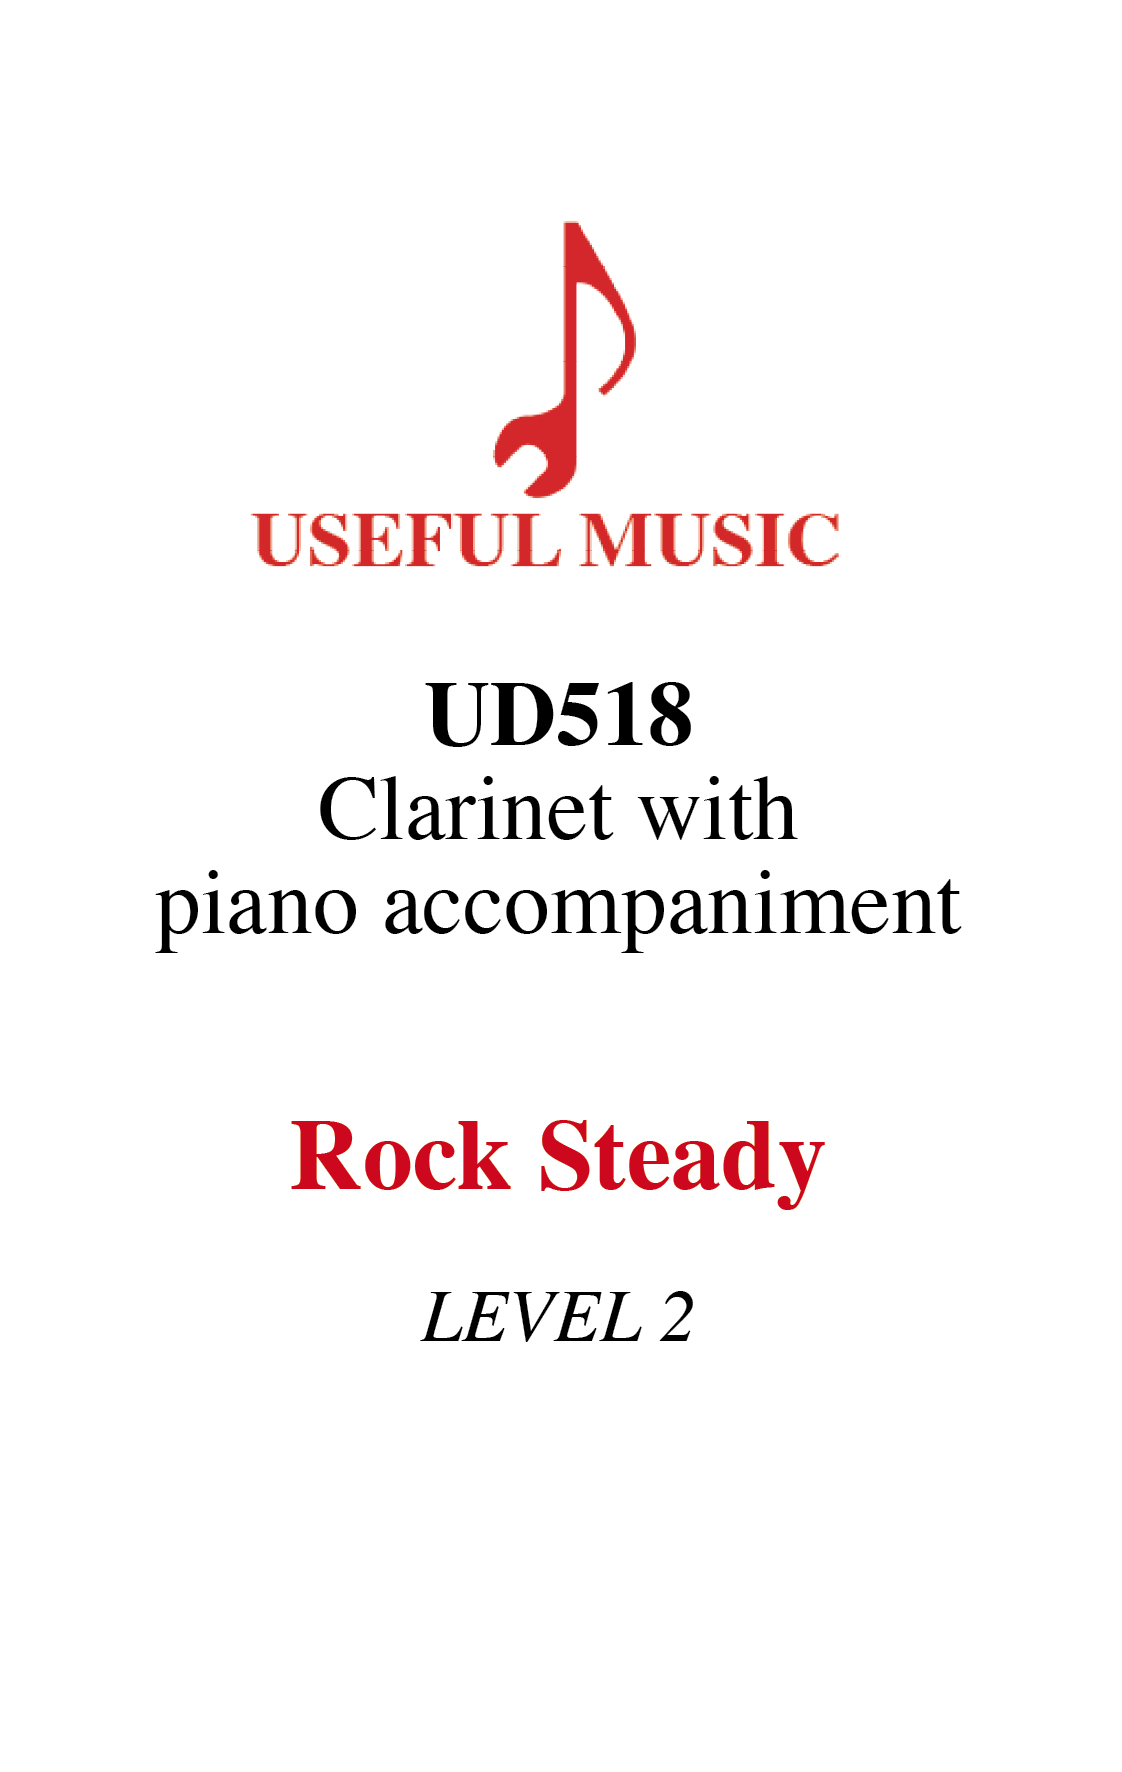 Rock Steady - Clarinet with piano accompaniment